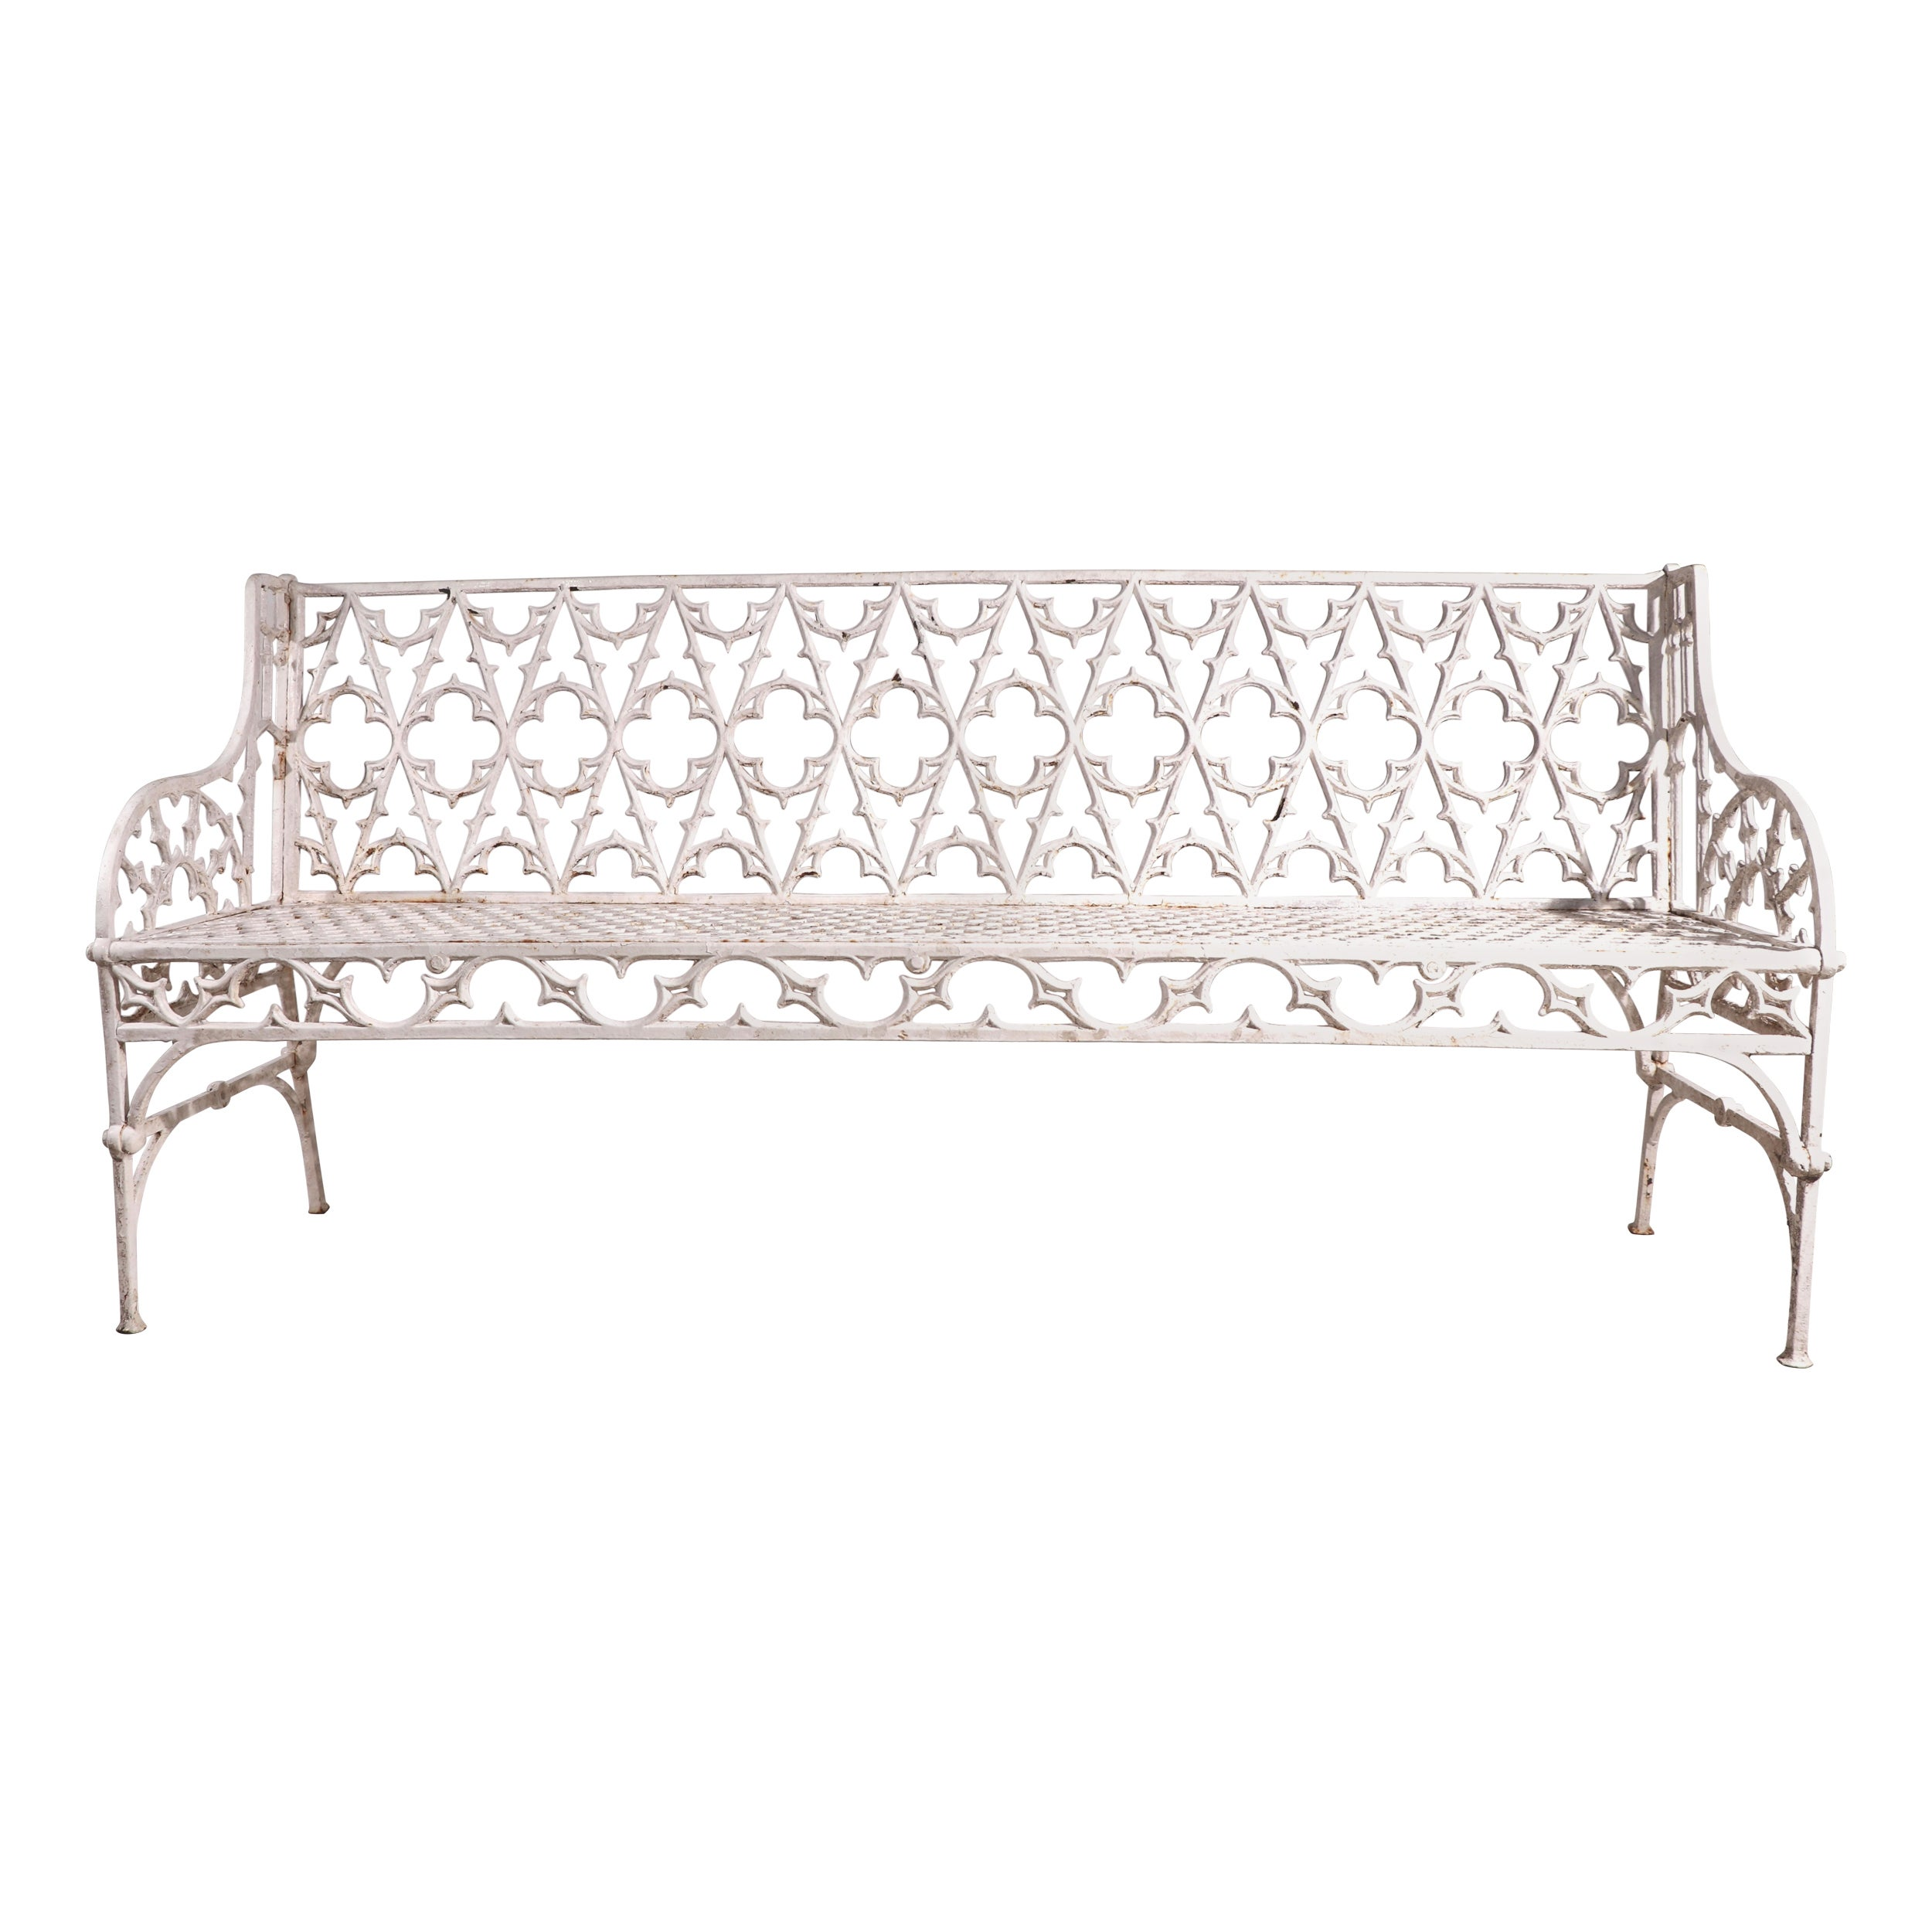 Mammouth Cast Iron Garden  Bench with Gothic Castings